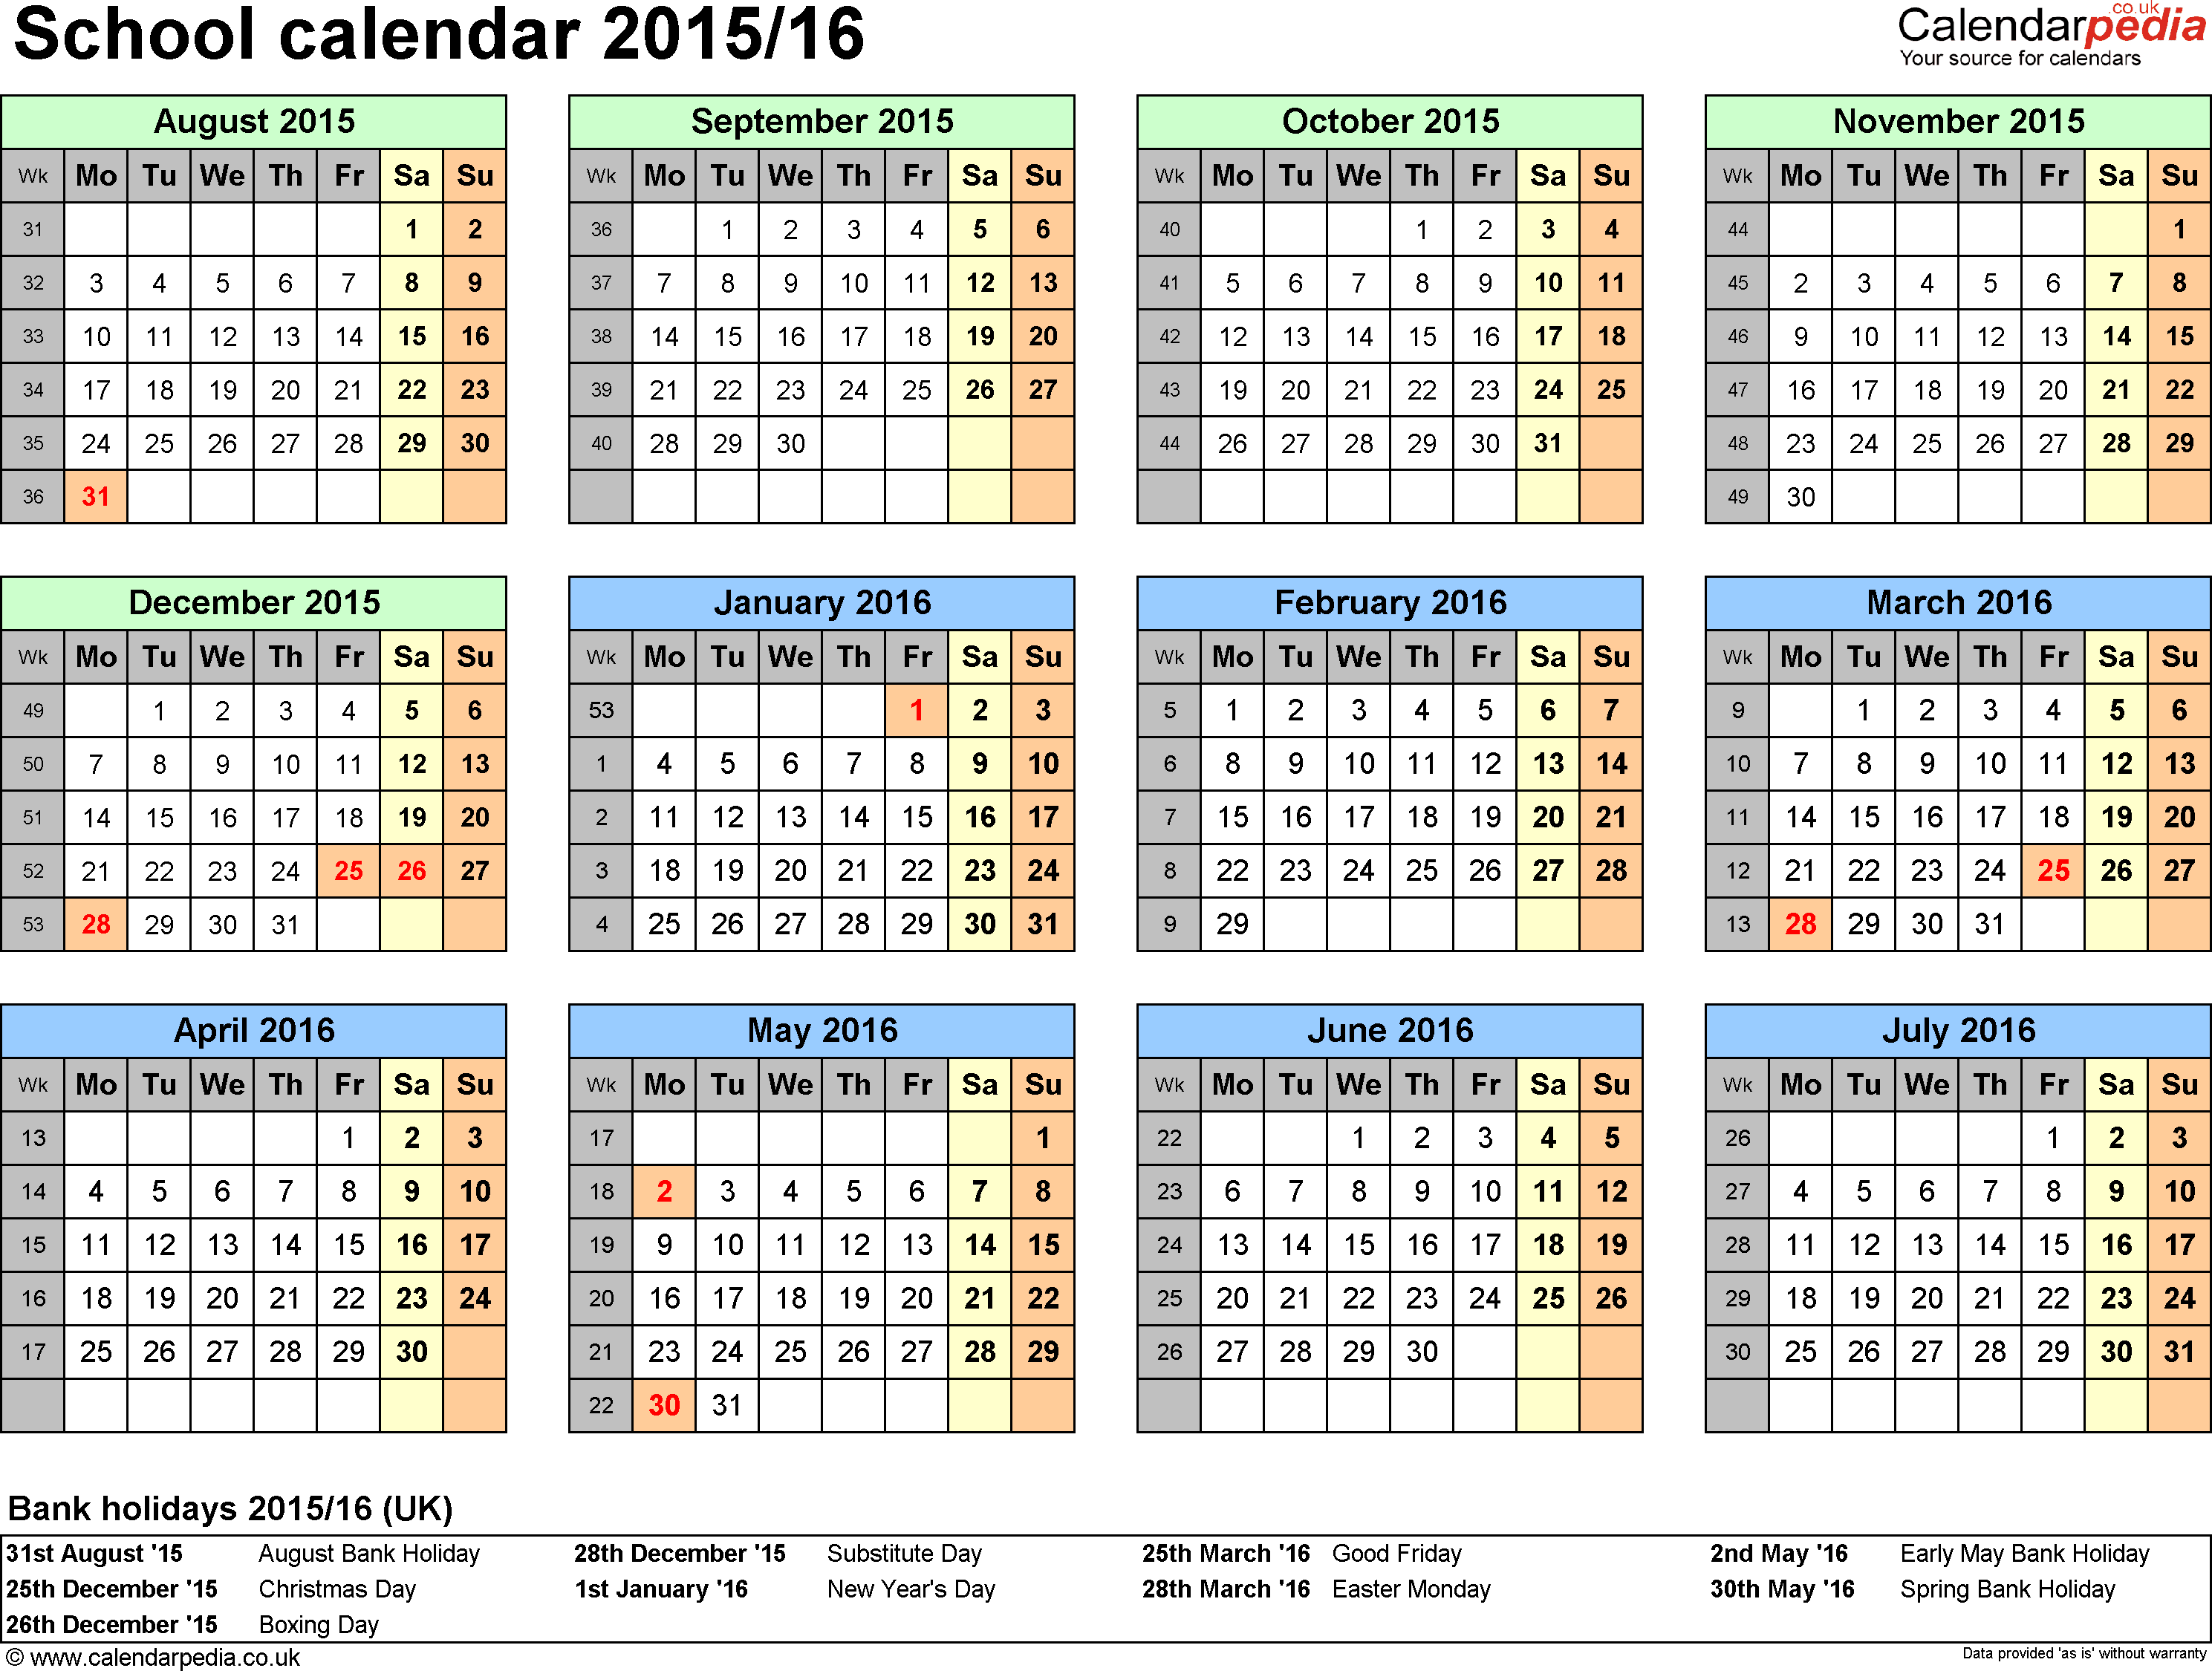 Template 4: School year calendars 2015/16 as Word template, year at a glance, 1 page